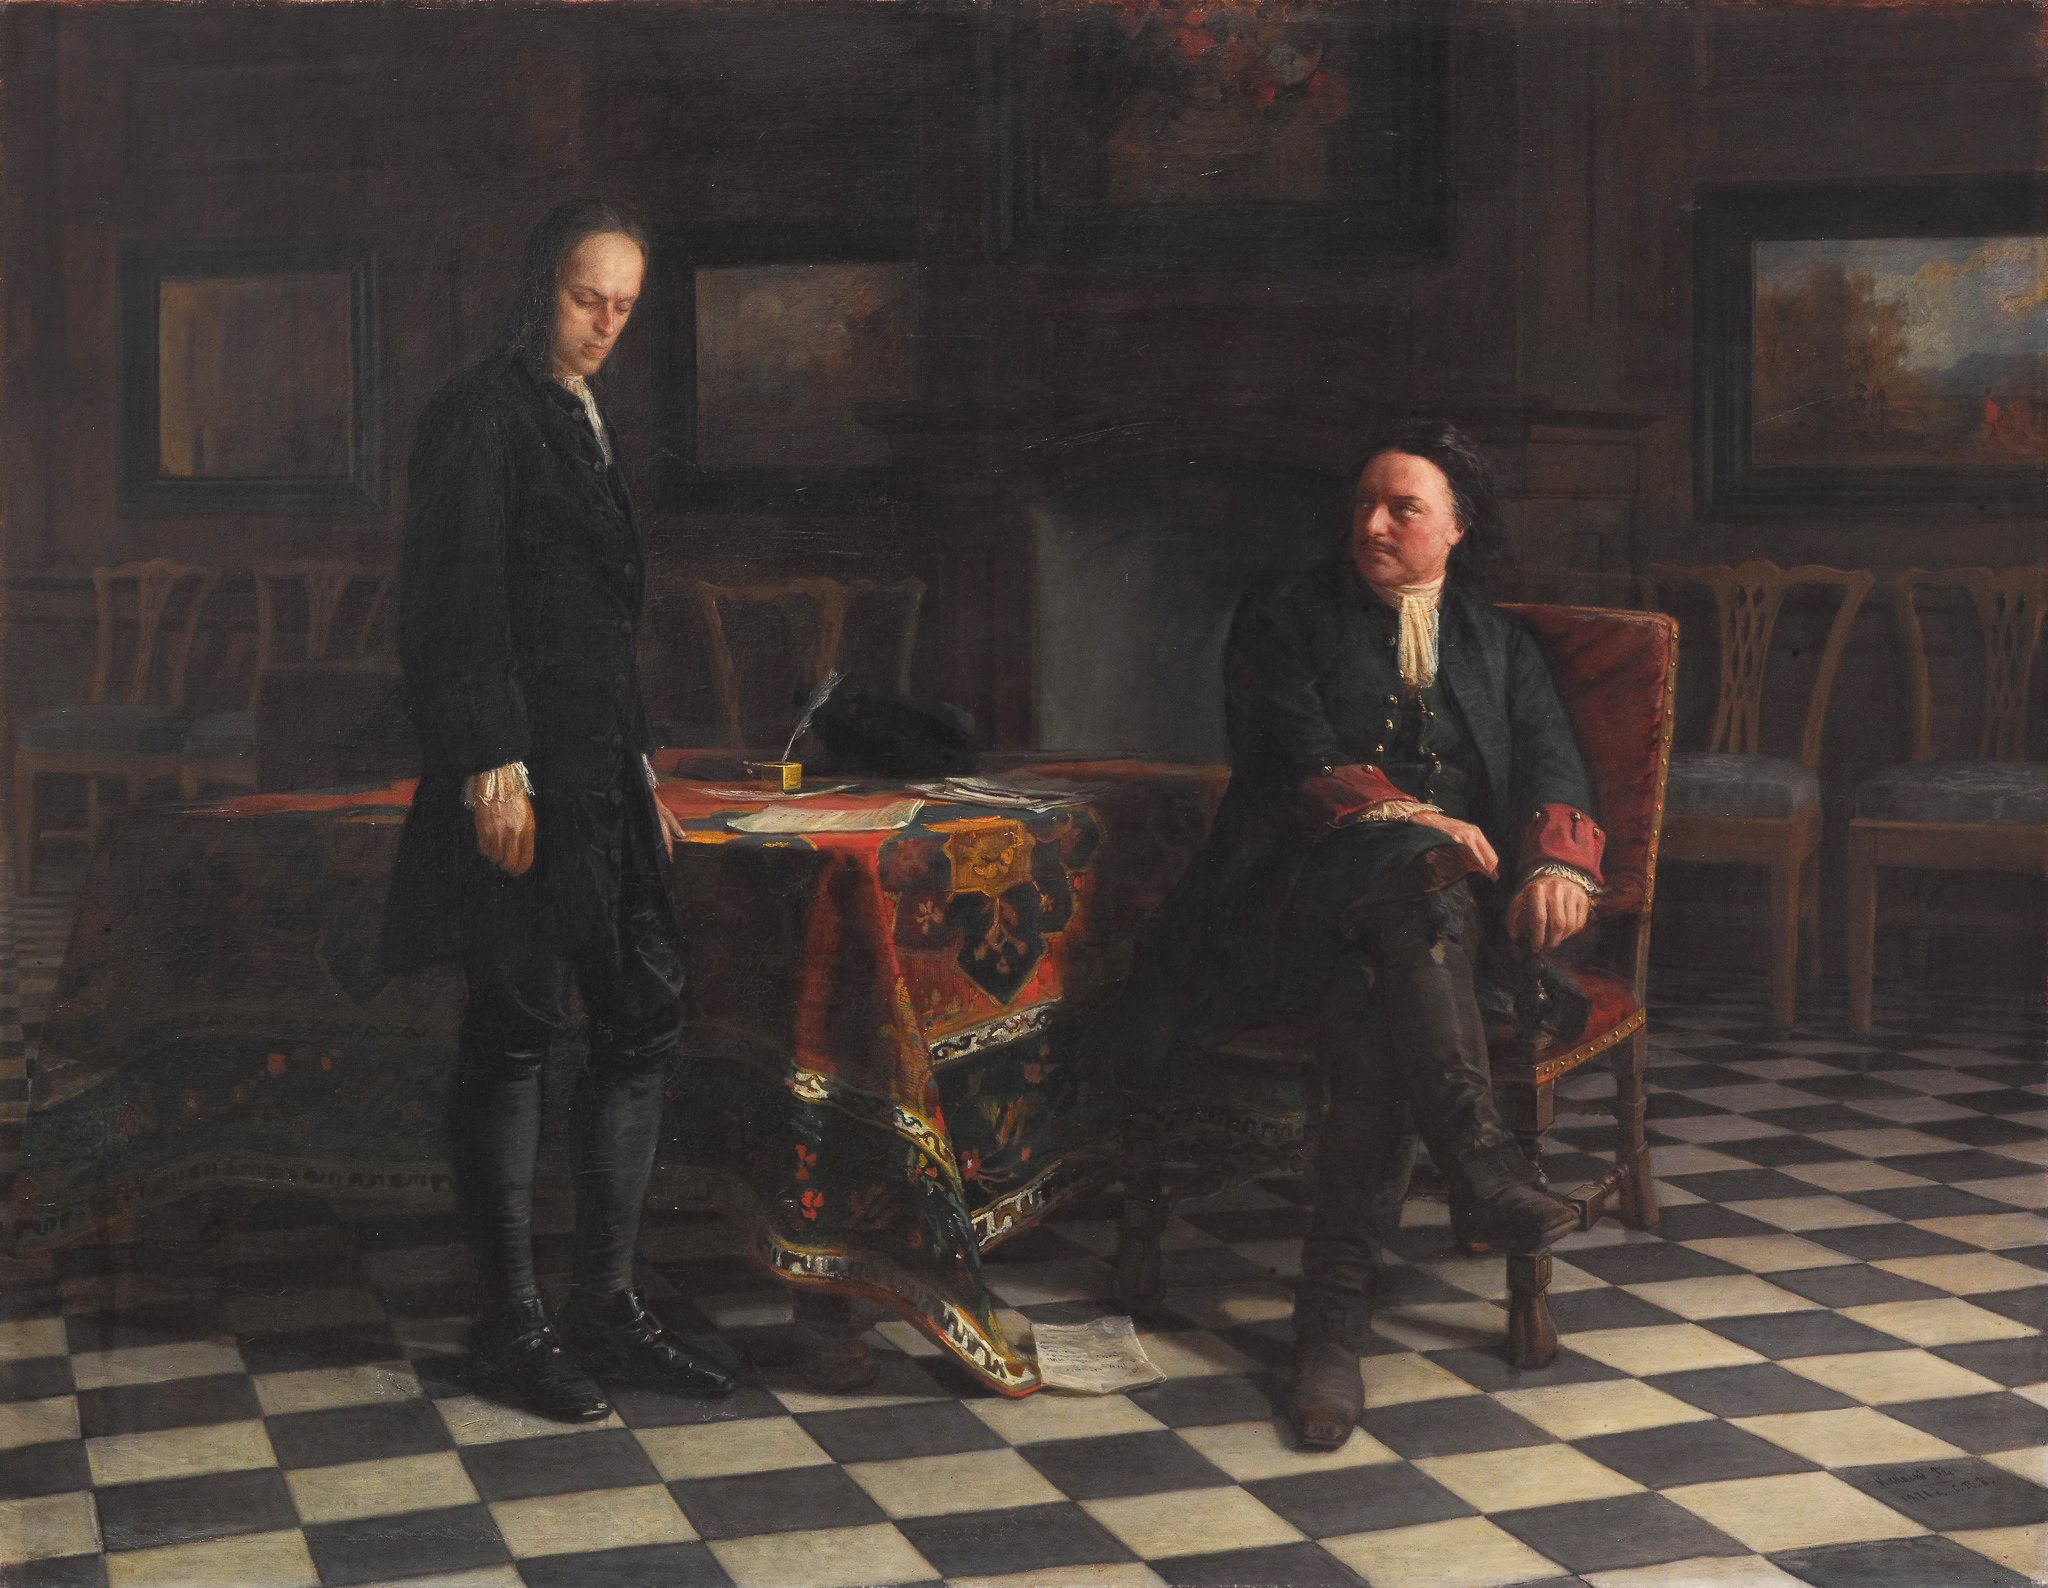 Peter_the_Great_Interrogating_the_Tsarev